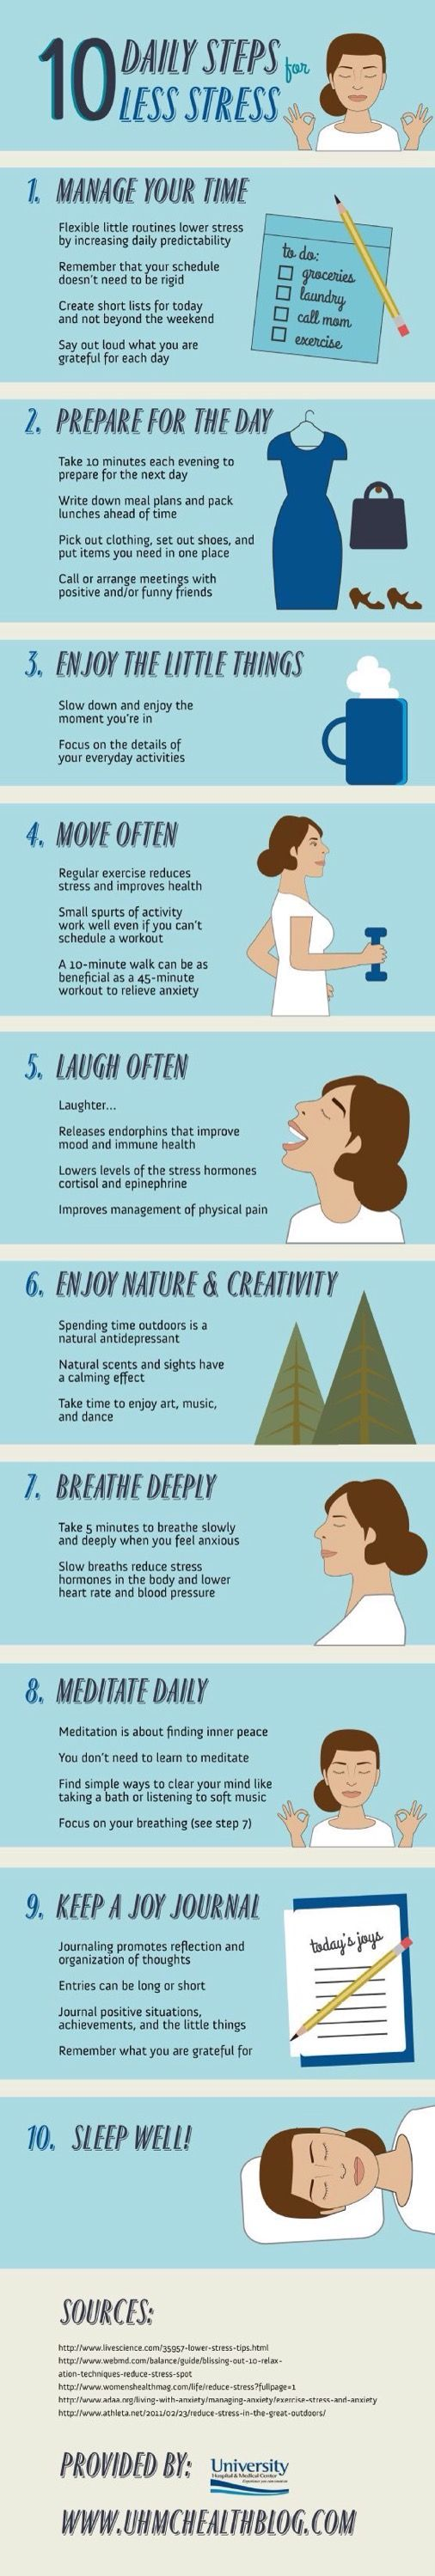 10 daily steps for less stress | Serena Glow – health, vitality and food